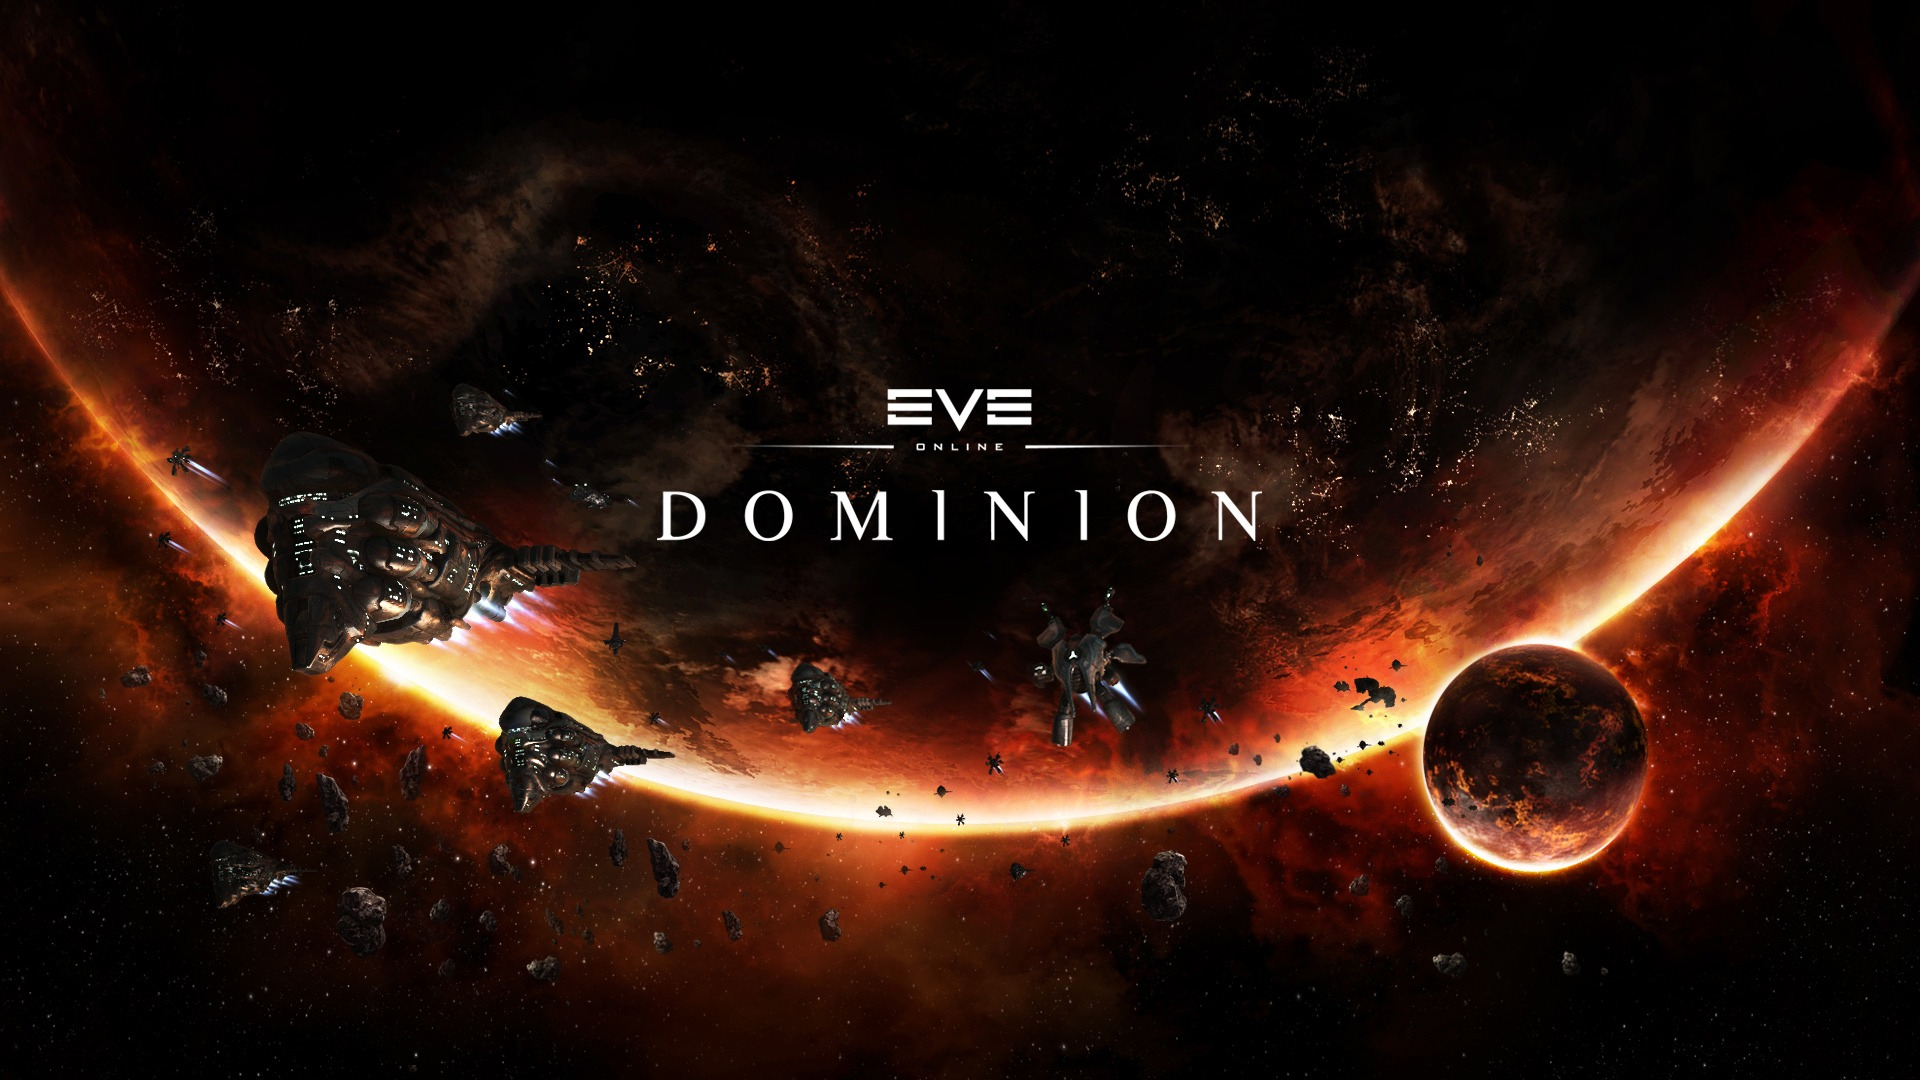 eve online how to pause download